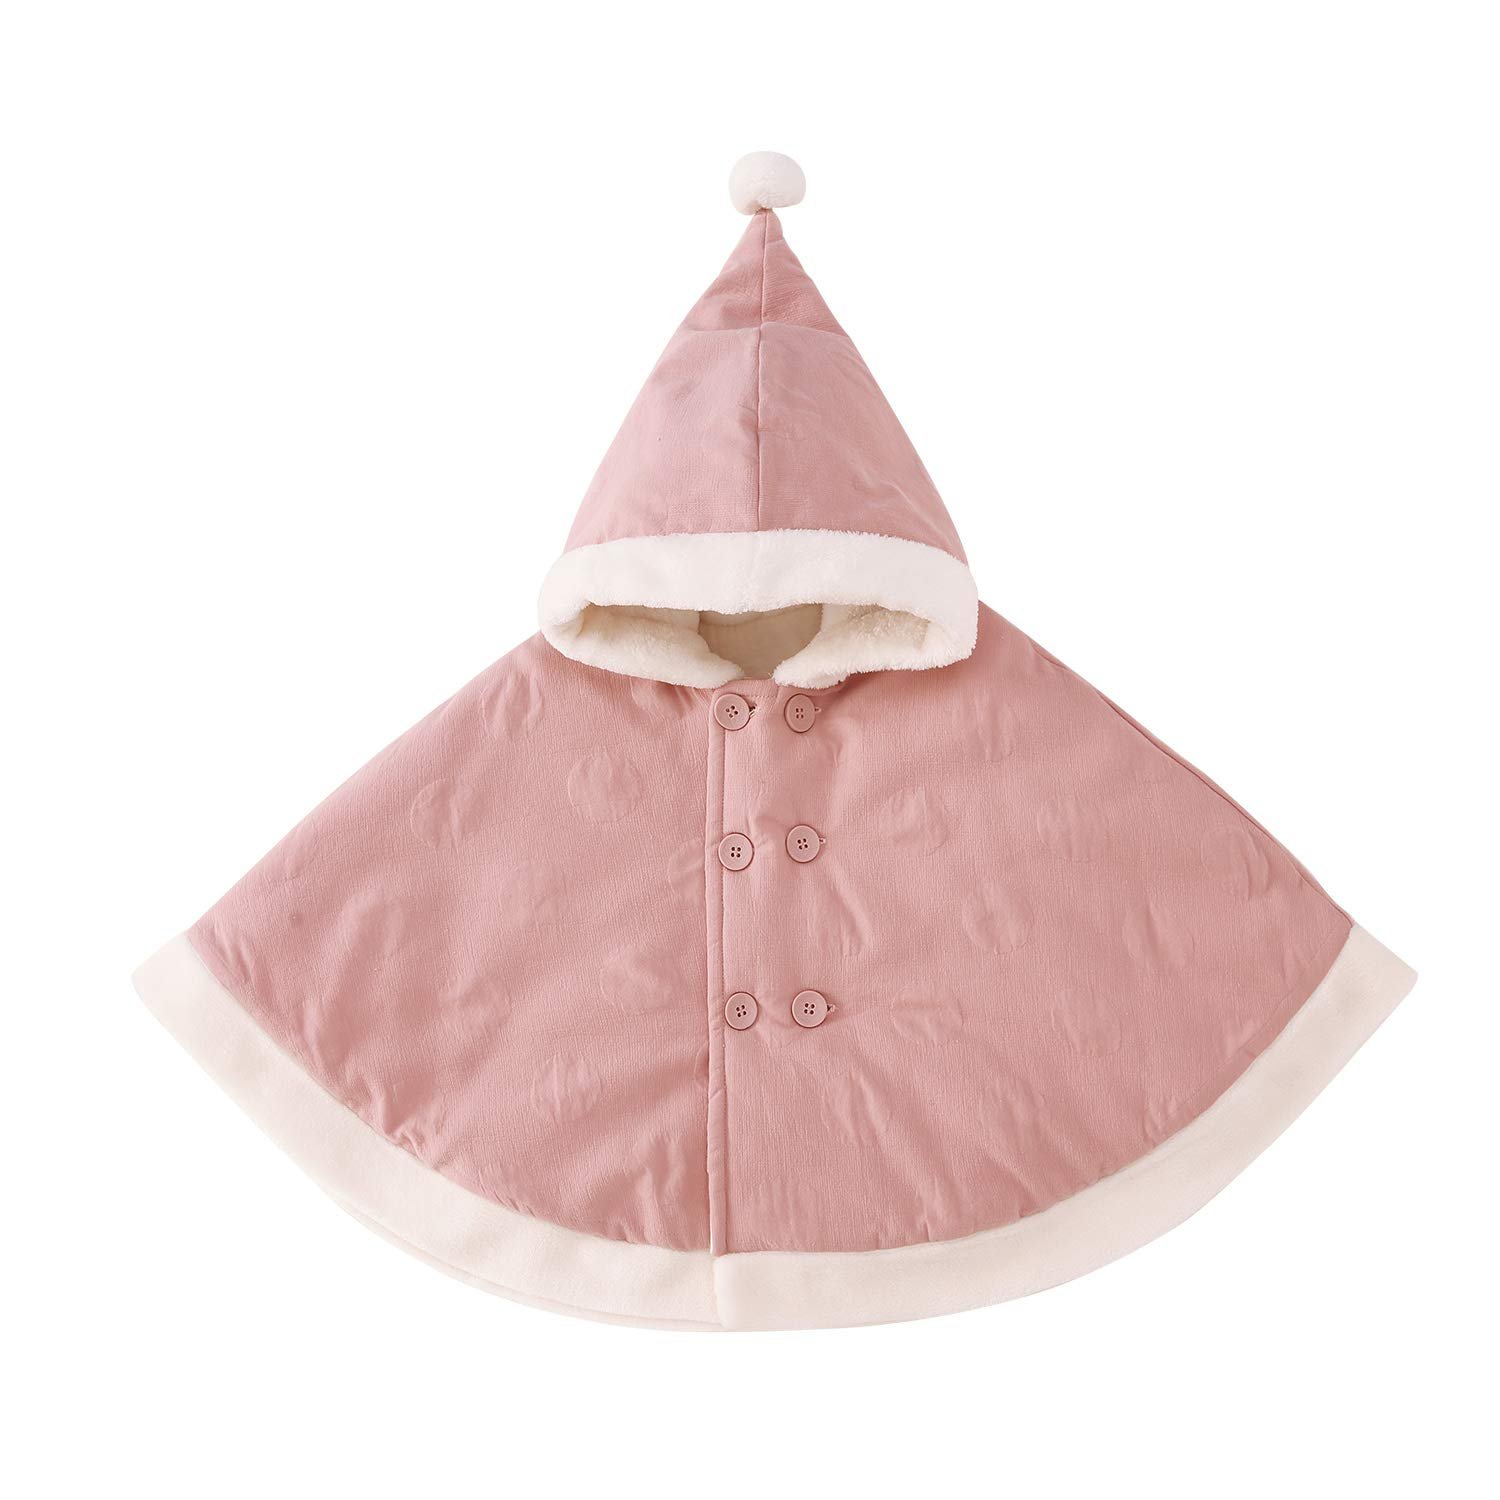 pureborn Baby Girls Boys Hooded Cape Cloak Carseat Poncho Coat Toddler Spring Winter Outfit 0-3 Years